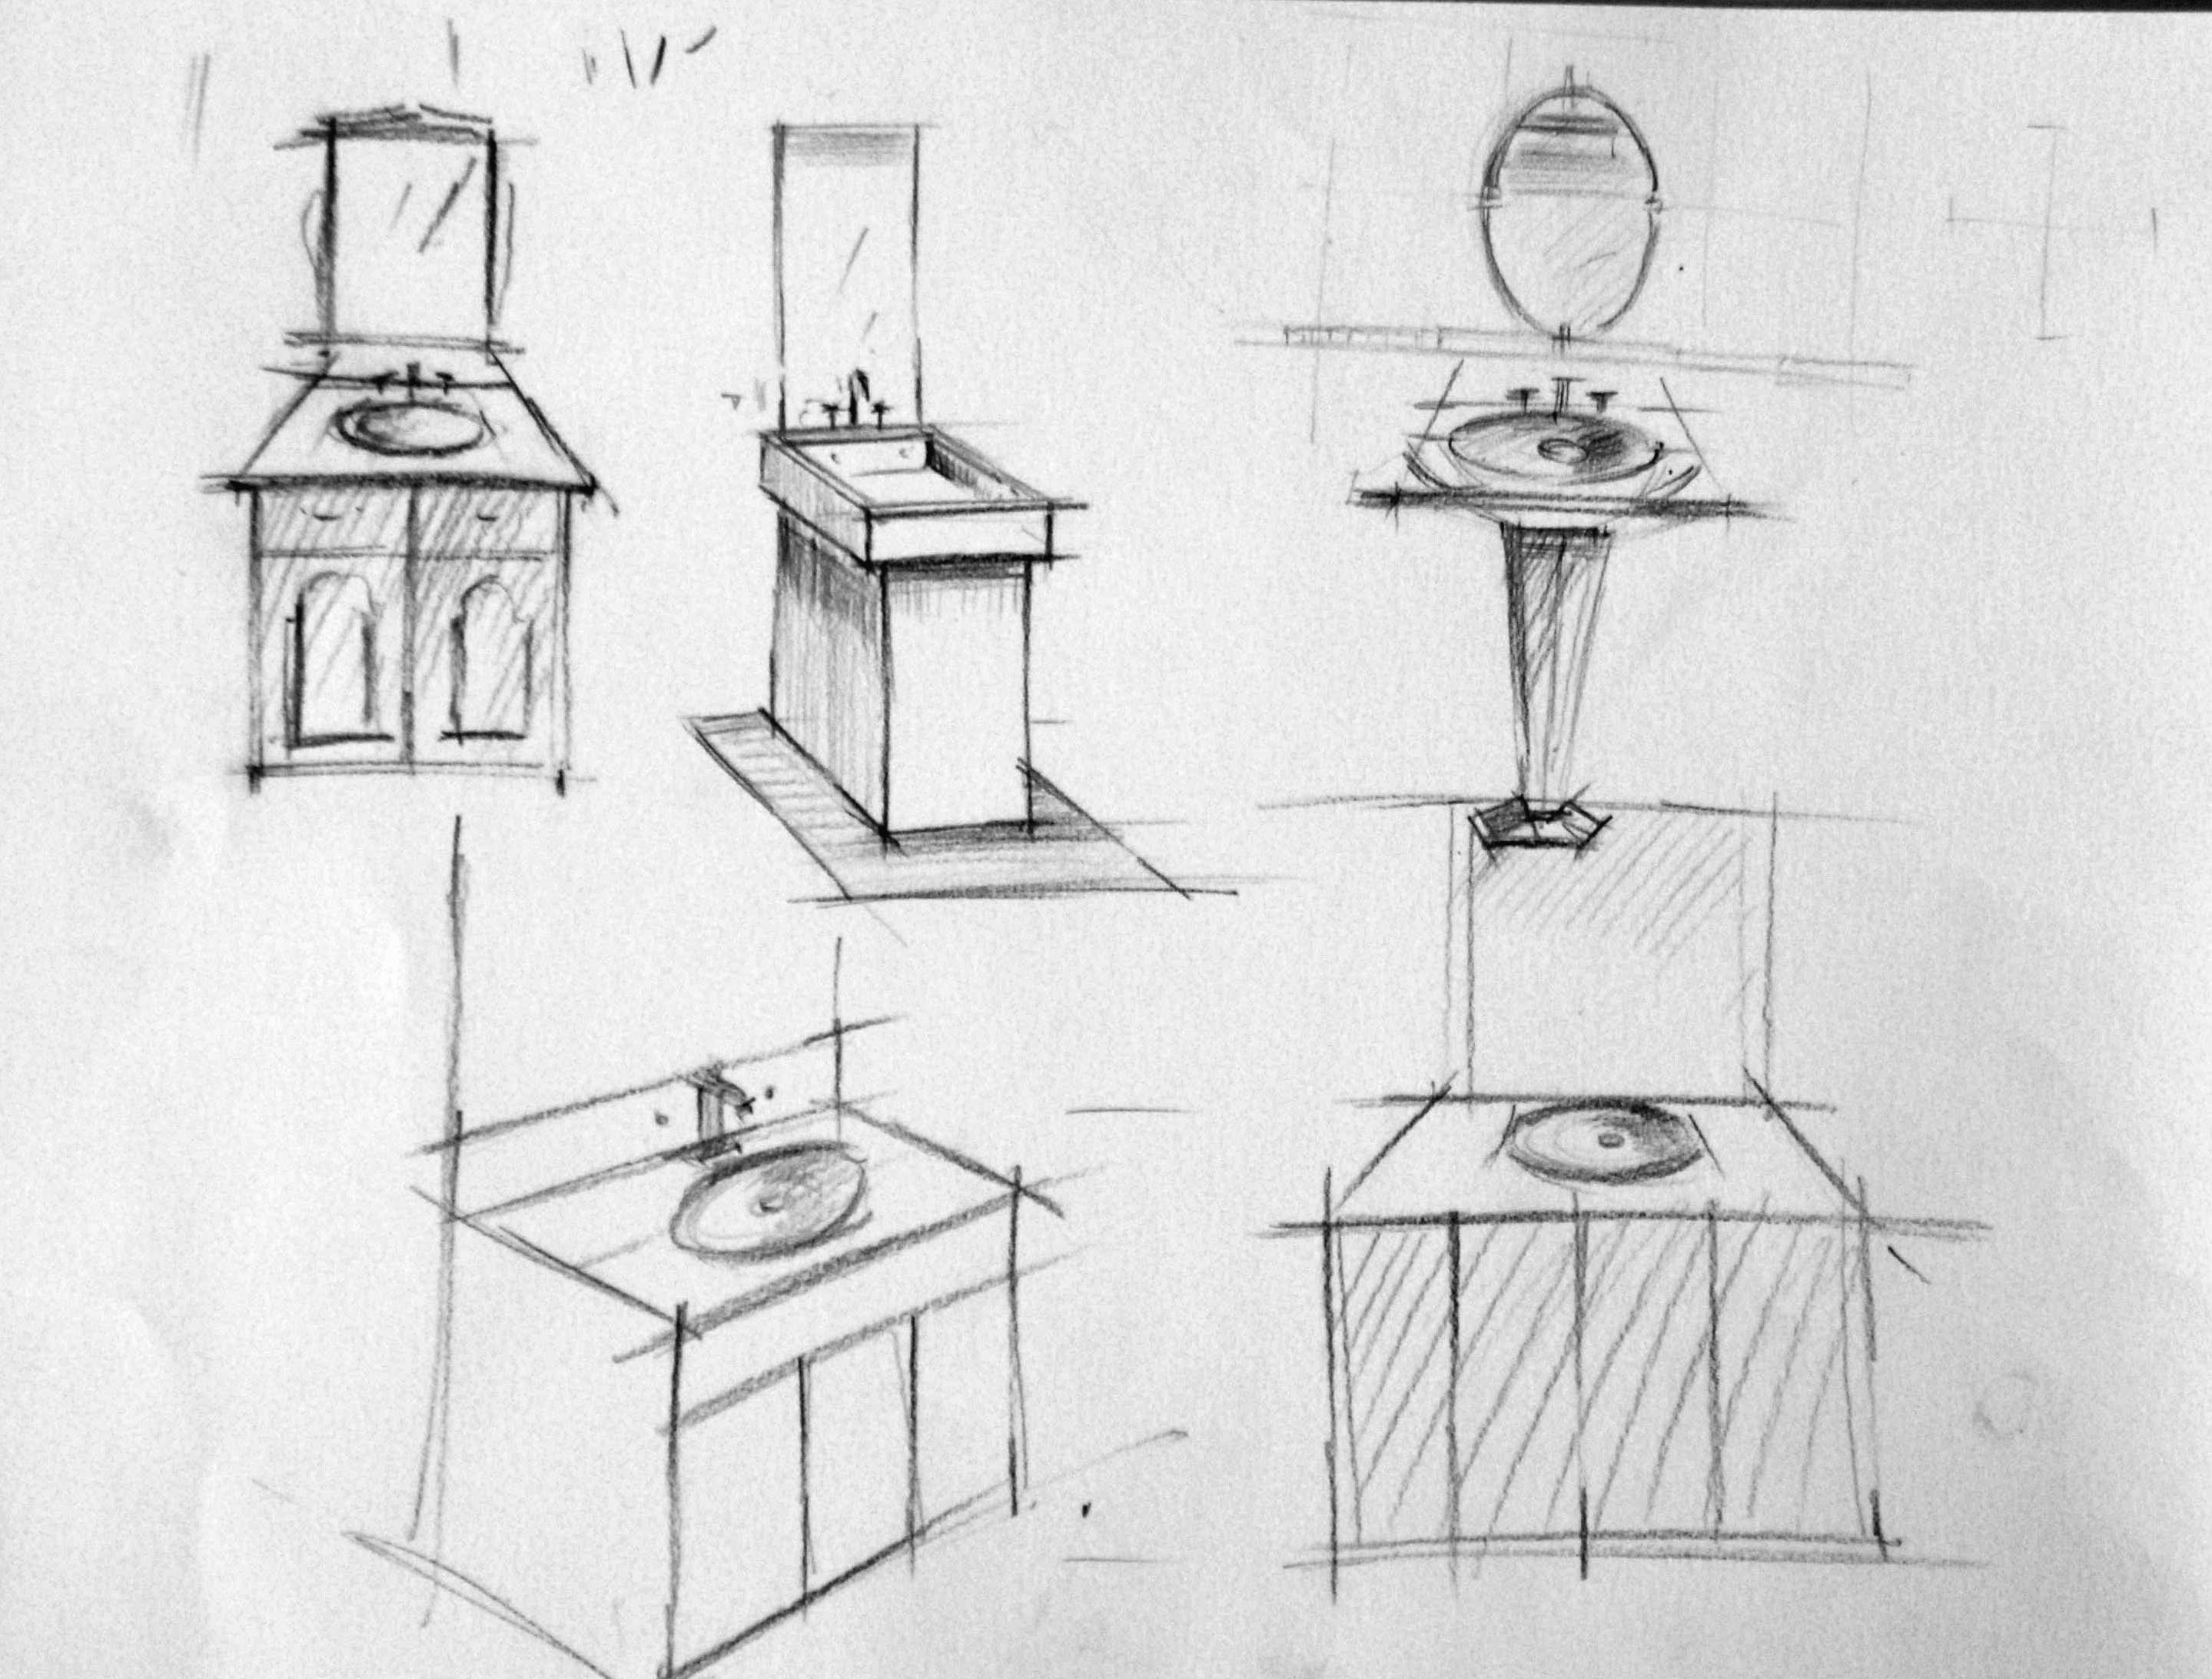 cours de dessin initiation dessin en perspective. Black Bedroom Furniture Sets. Home Design Ideas